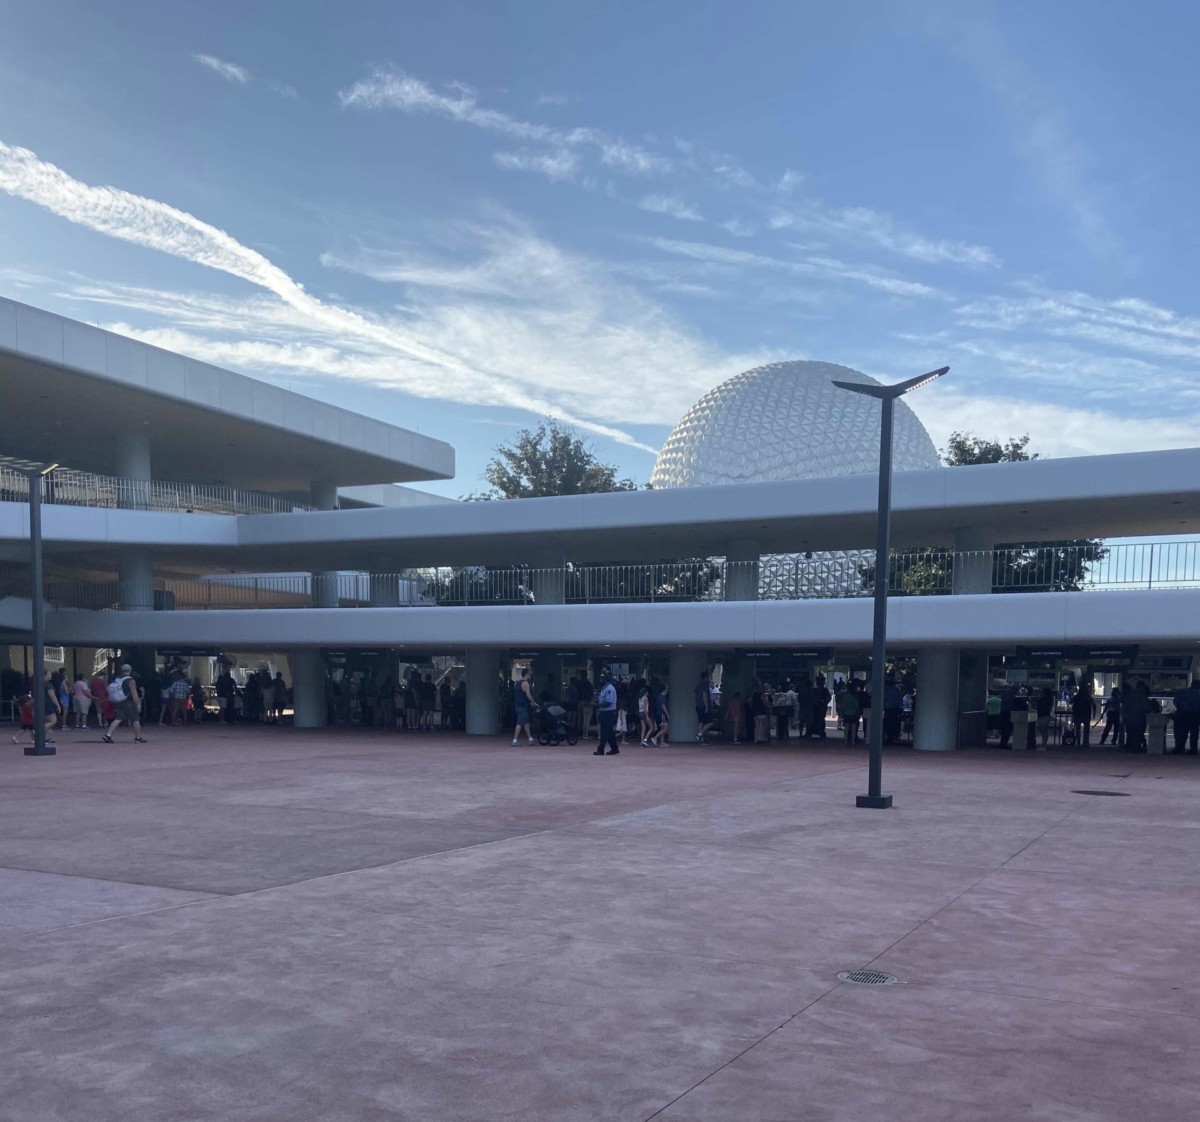 New Security Bag Check Area at Epcot! 4